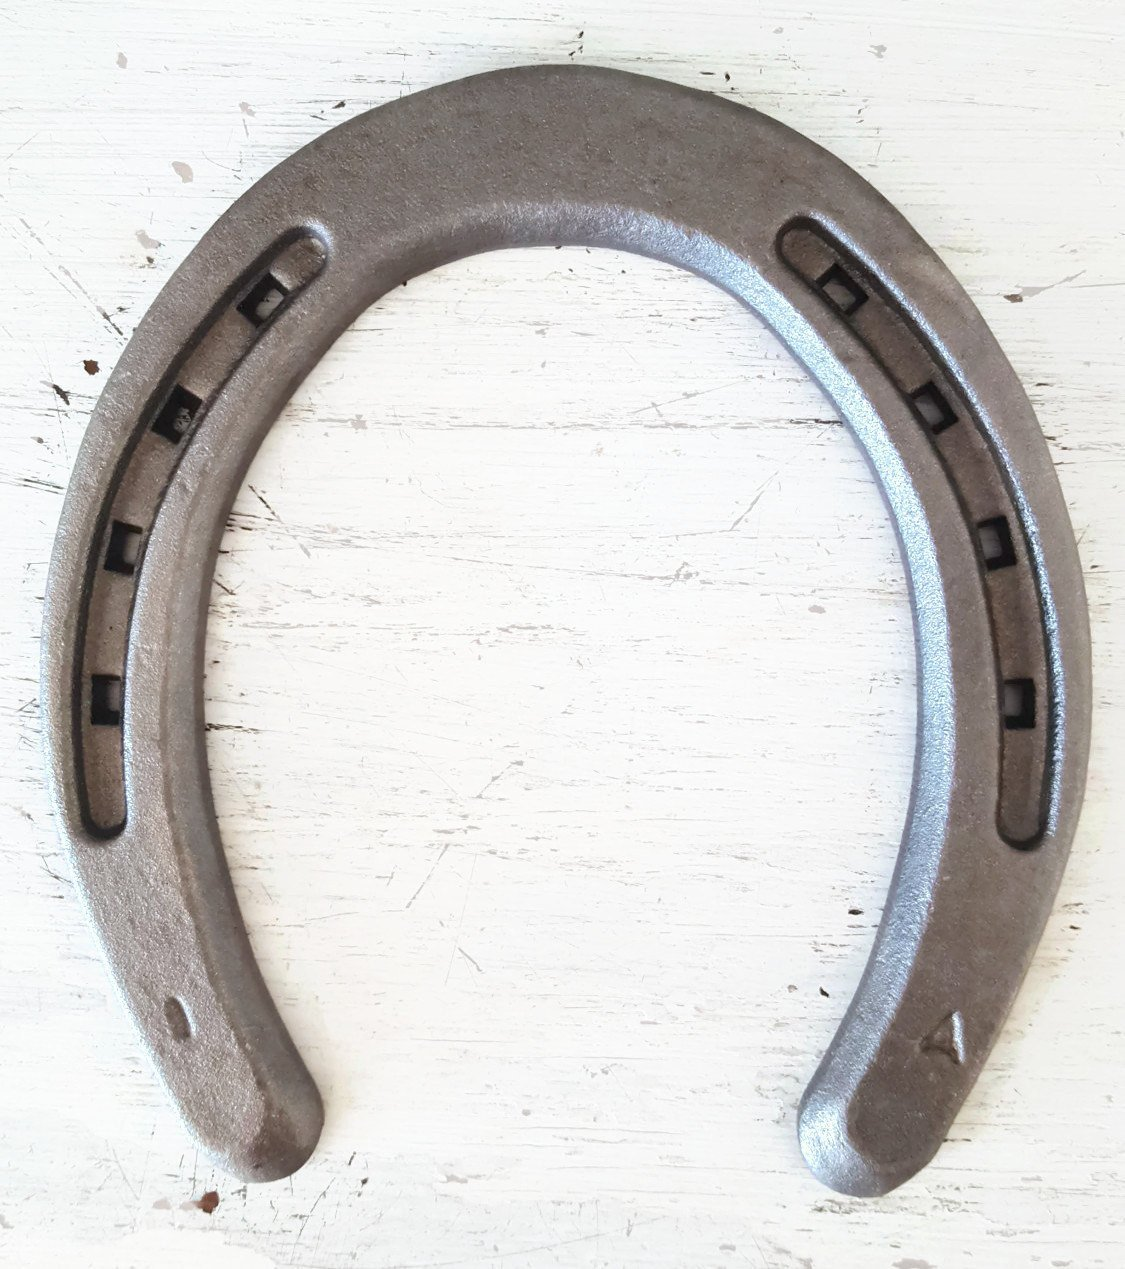 New Steel Horseshoes - Plain Shoe Size 1 -Sand Blasted- Heritage Forge - 40 Shoes by The Heritage Forge